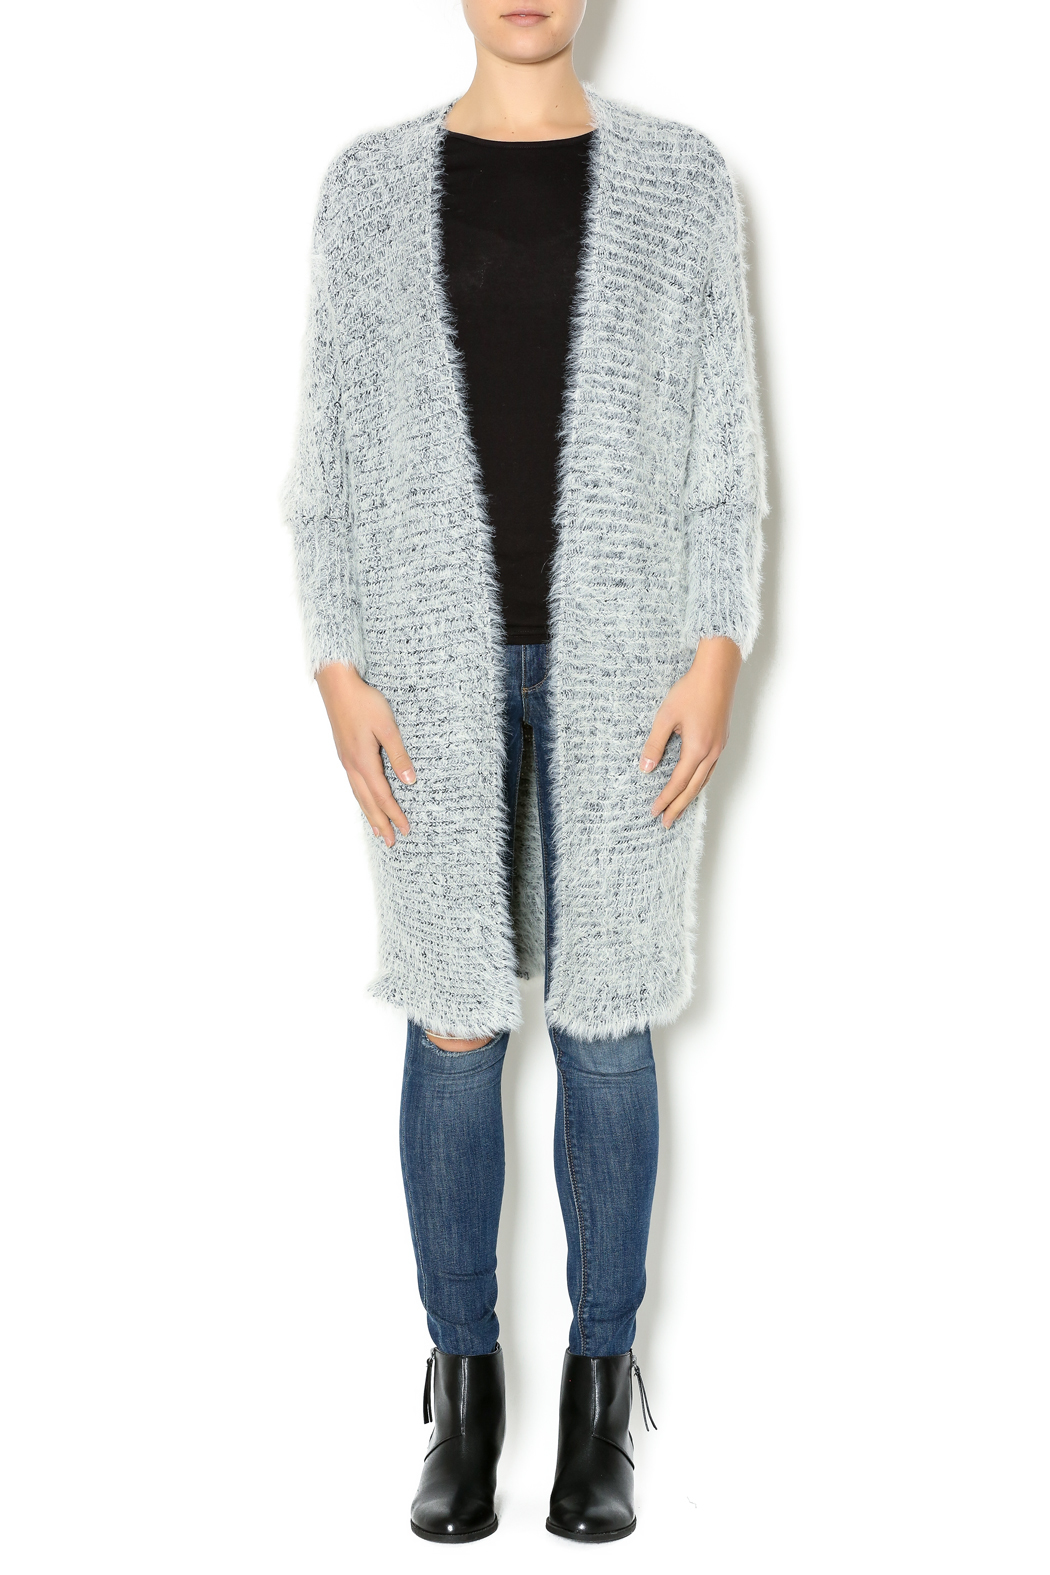 Hot & Delicious Oversize Fuzzy Cardigan - Front Full Image